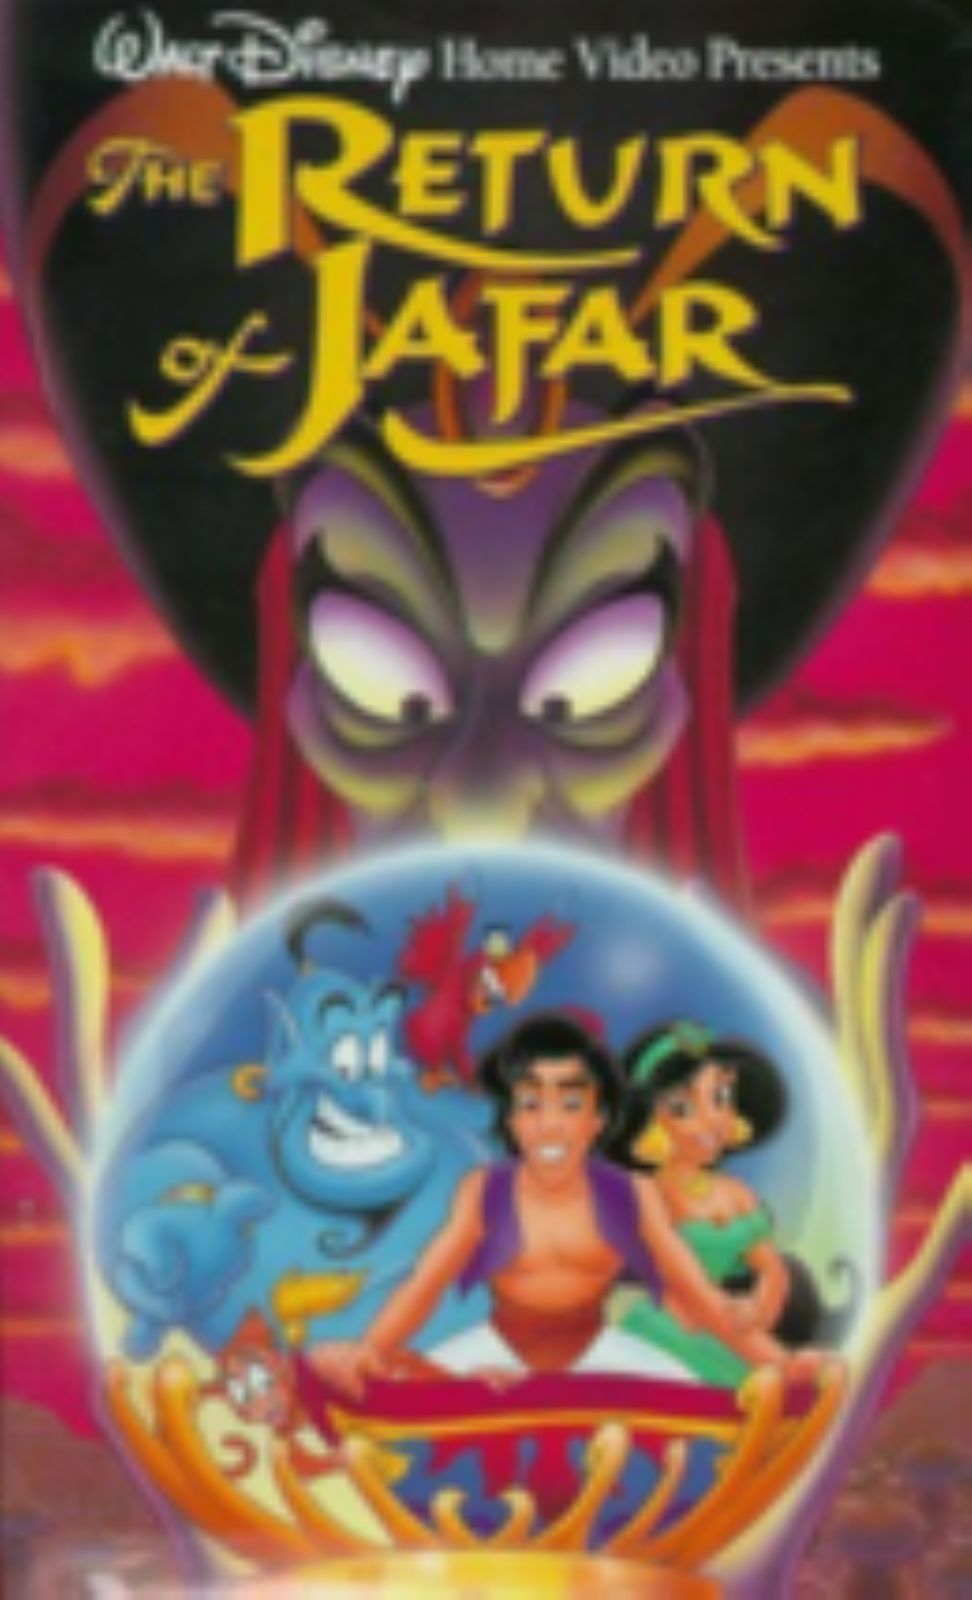 The Return of Jafar Vhs